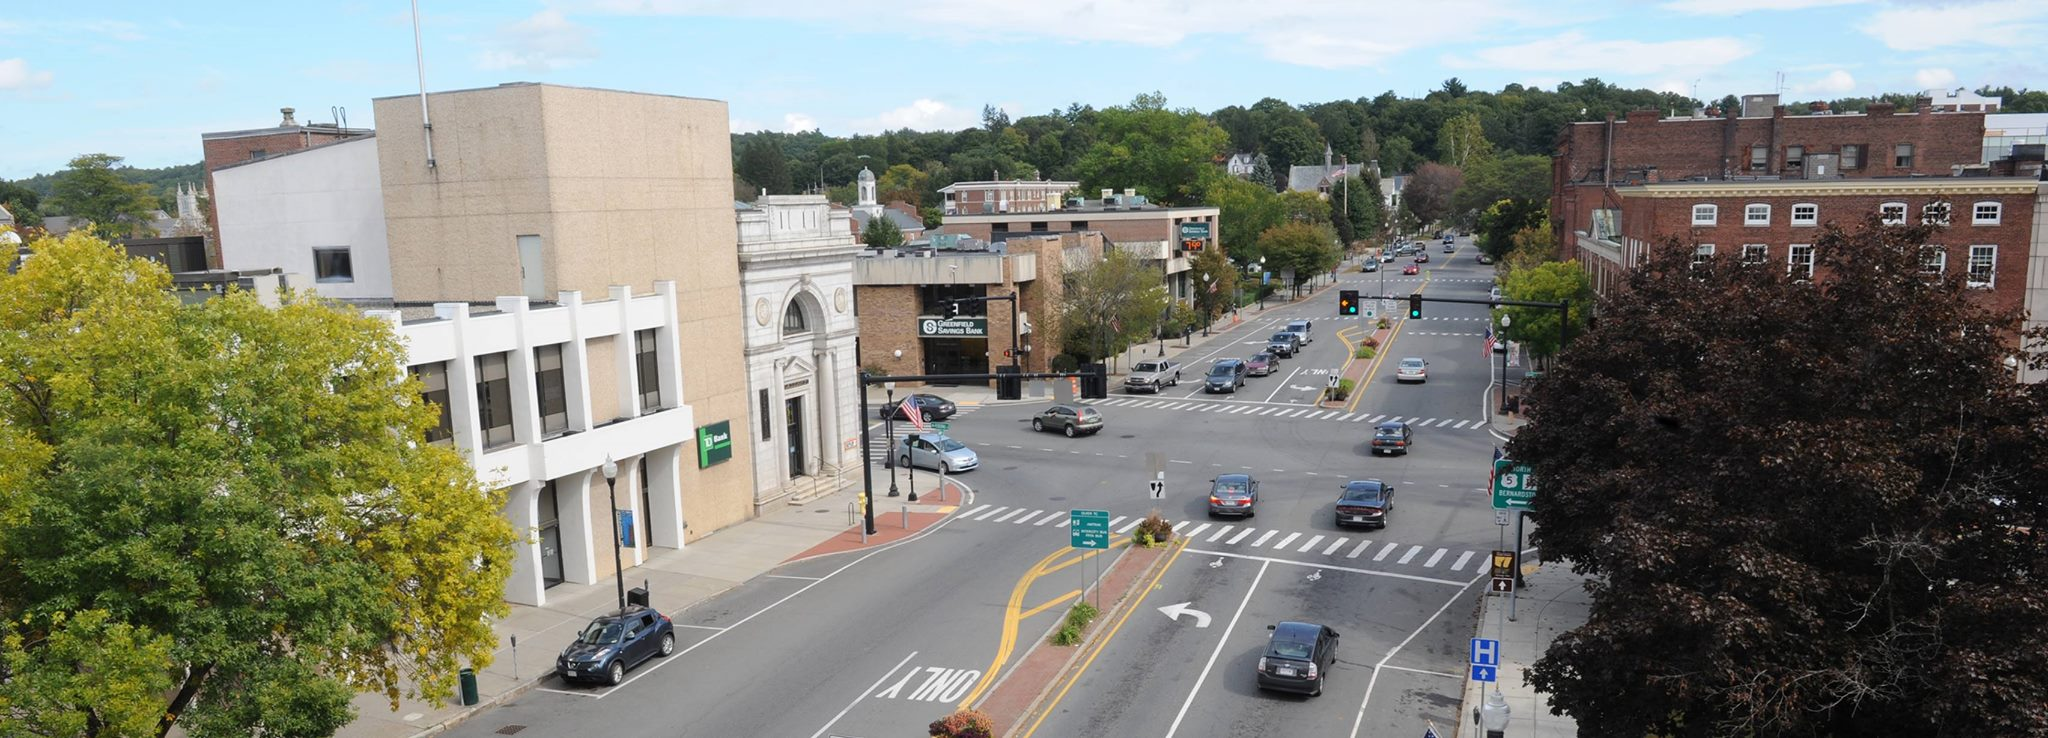 5 things to love about Greenfield